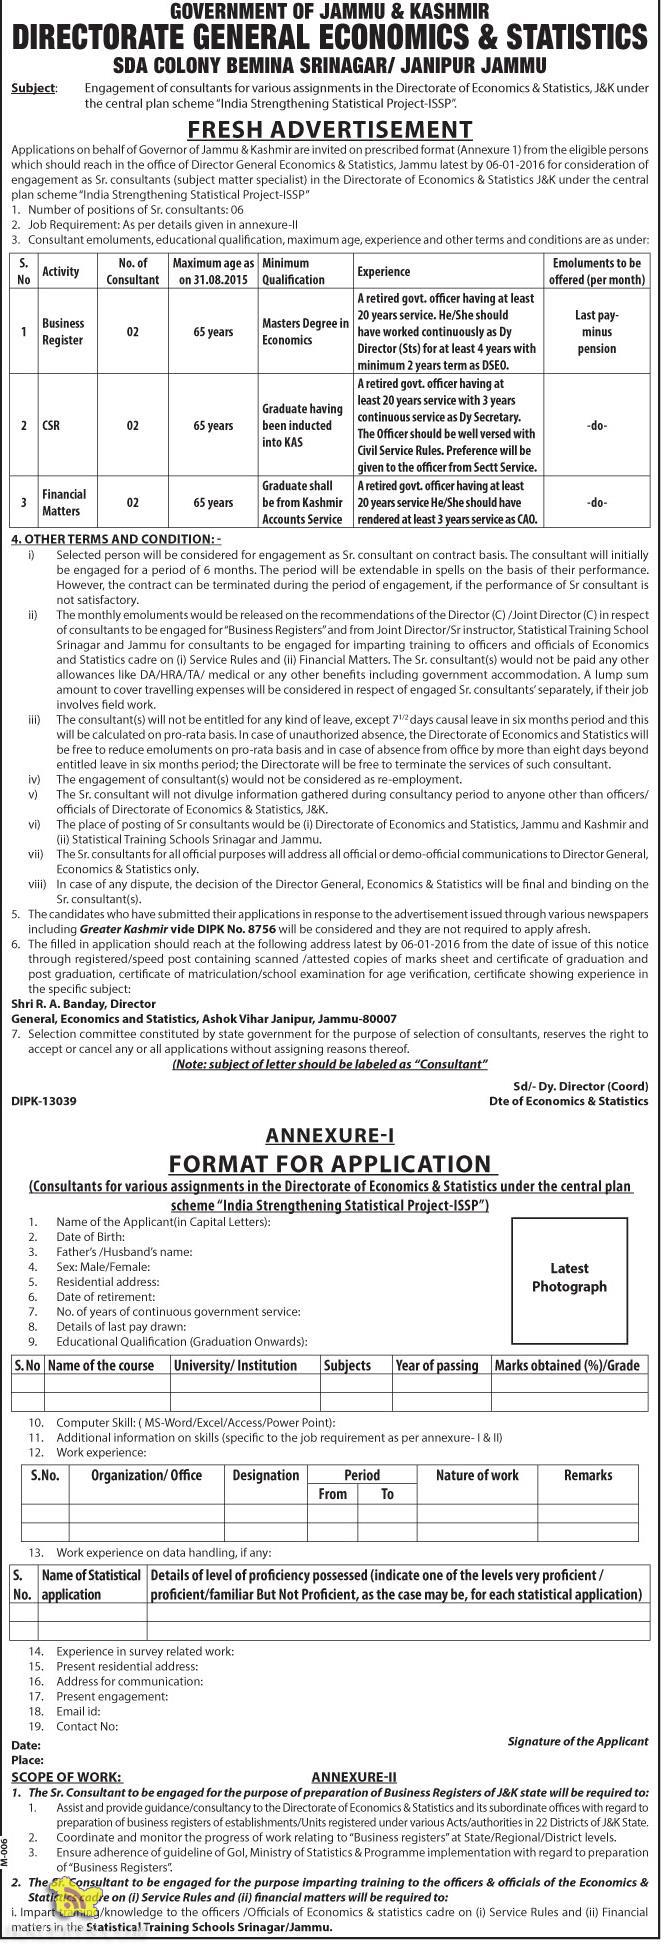 Consultants jobs for various assignments in the Directorate of Economics & Statistics